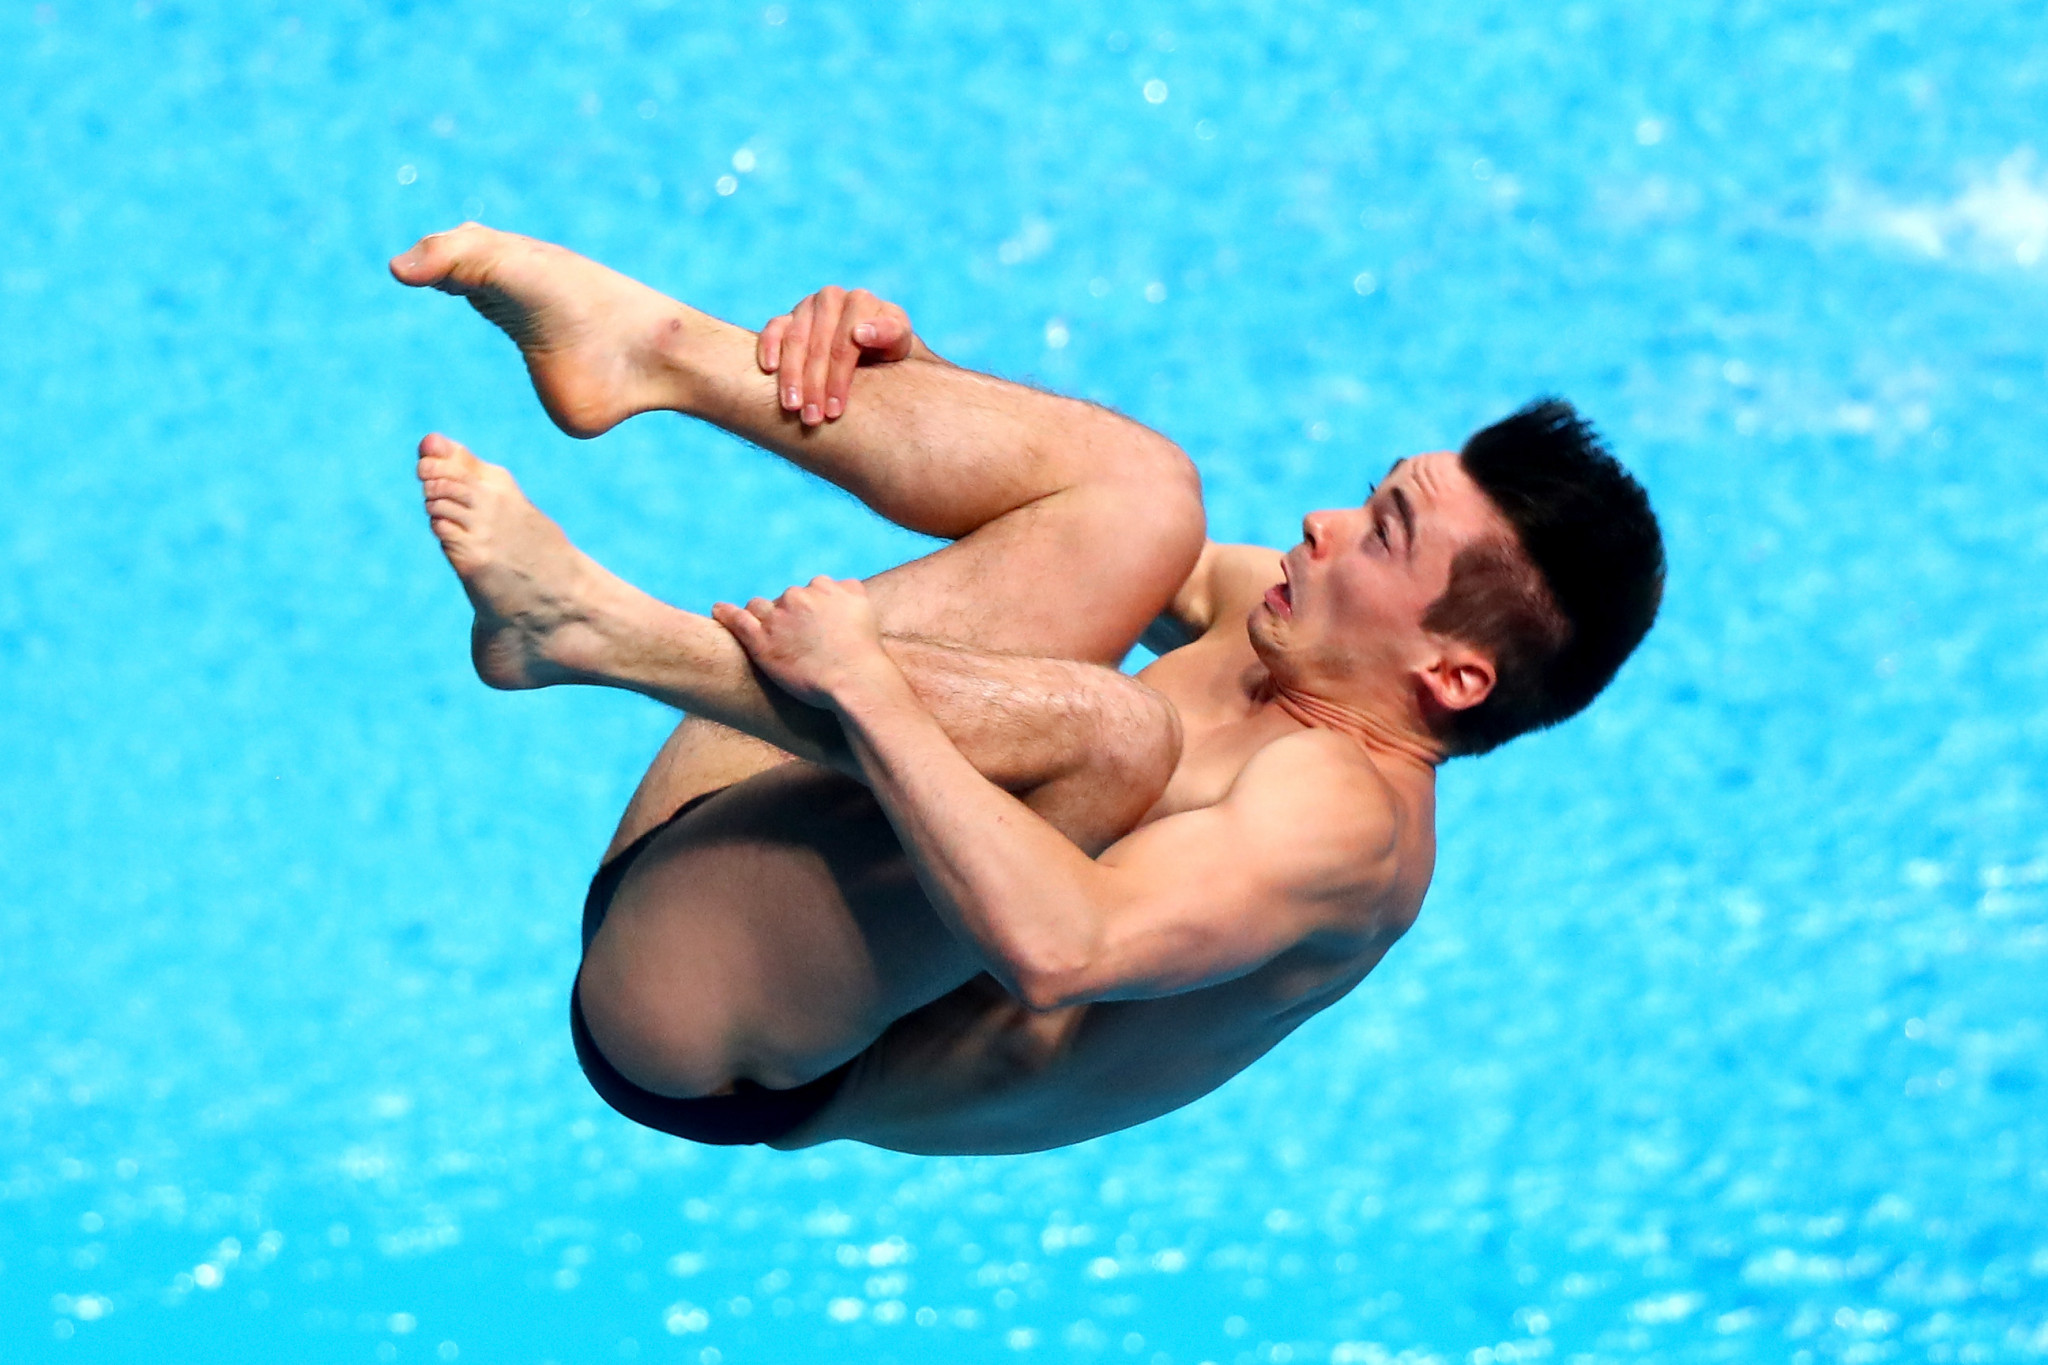 Daniel Goodfellow eased into the men's 3m springboard semi-final ©Getty Images